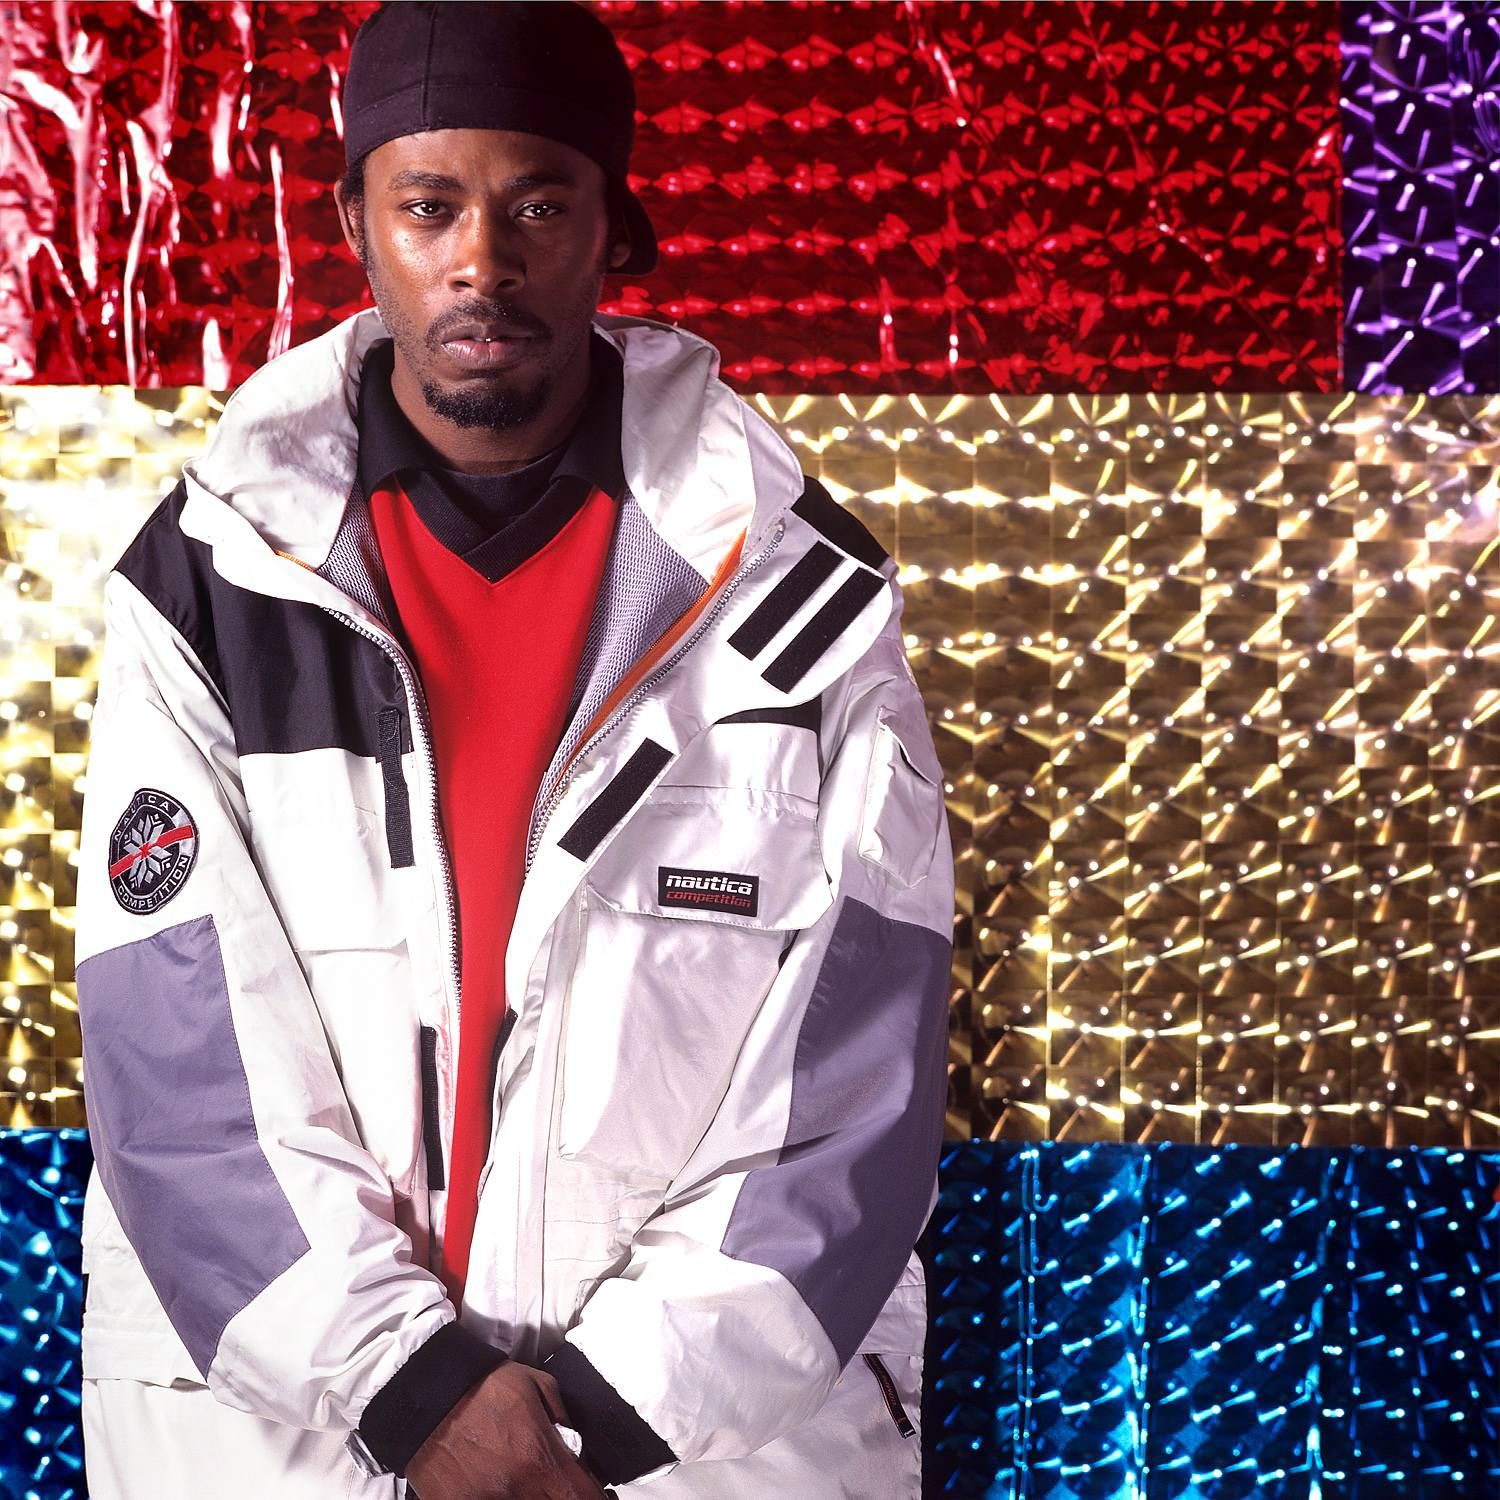 """GZA vs. Every Label in Existence - Signed to Tommy Boy before being signed to Loud as part of the Wu, and then moving on to Geffen as a solo artist, GZA knew all about label woes. """"First of all, who's your A&R? A mountain climber who plays an electric guitar,"""" he spit on his song """"Labels.""""(Photo: Bob Berg/Getty Images)"""